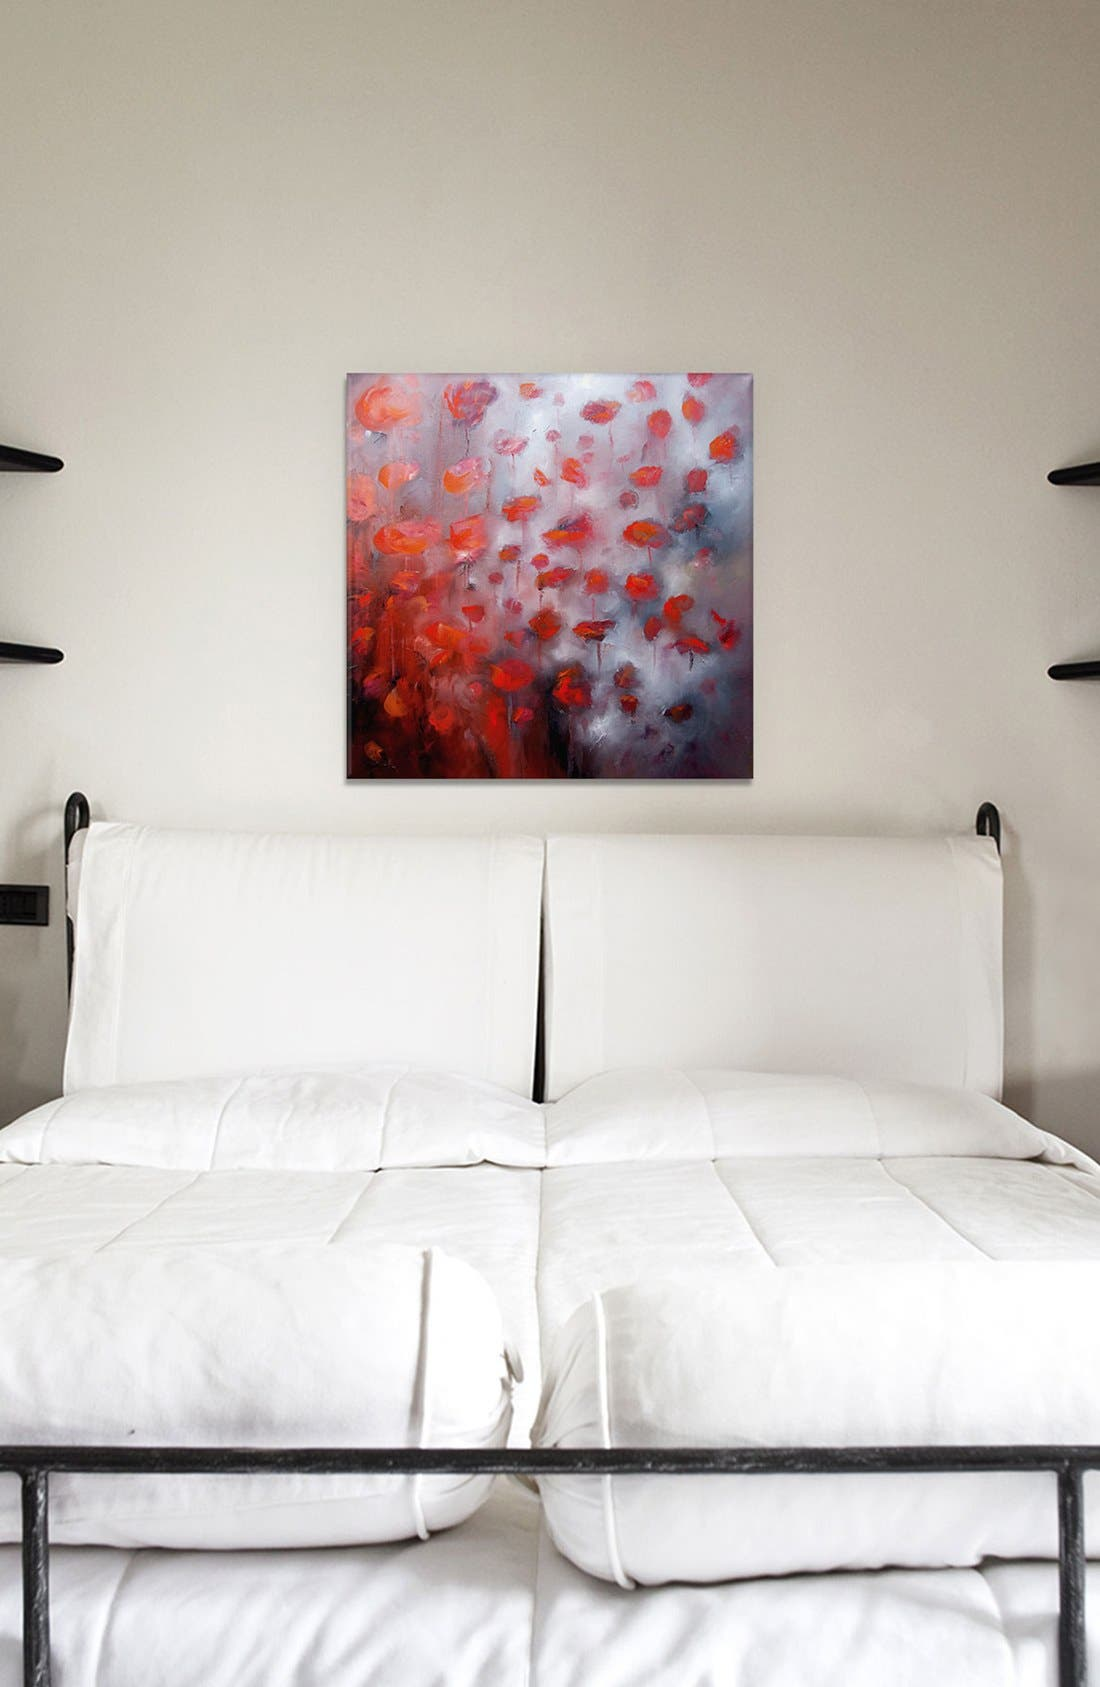 'Petals in Wind' Giclée Print Canvas Art,                             Alternate thumbnail 2, color,                             Red